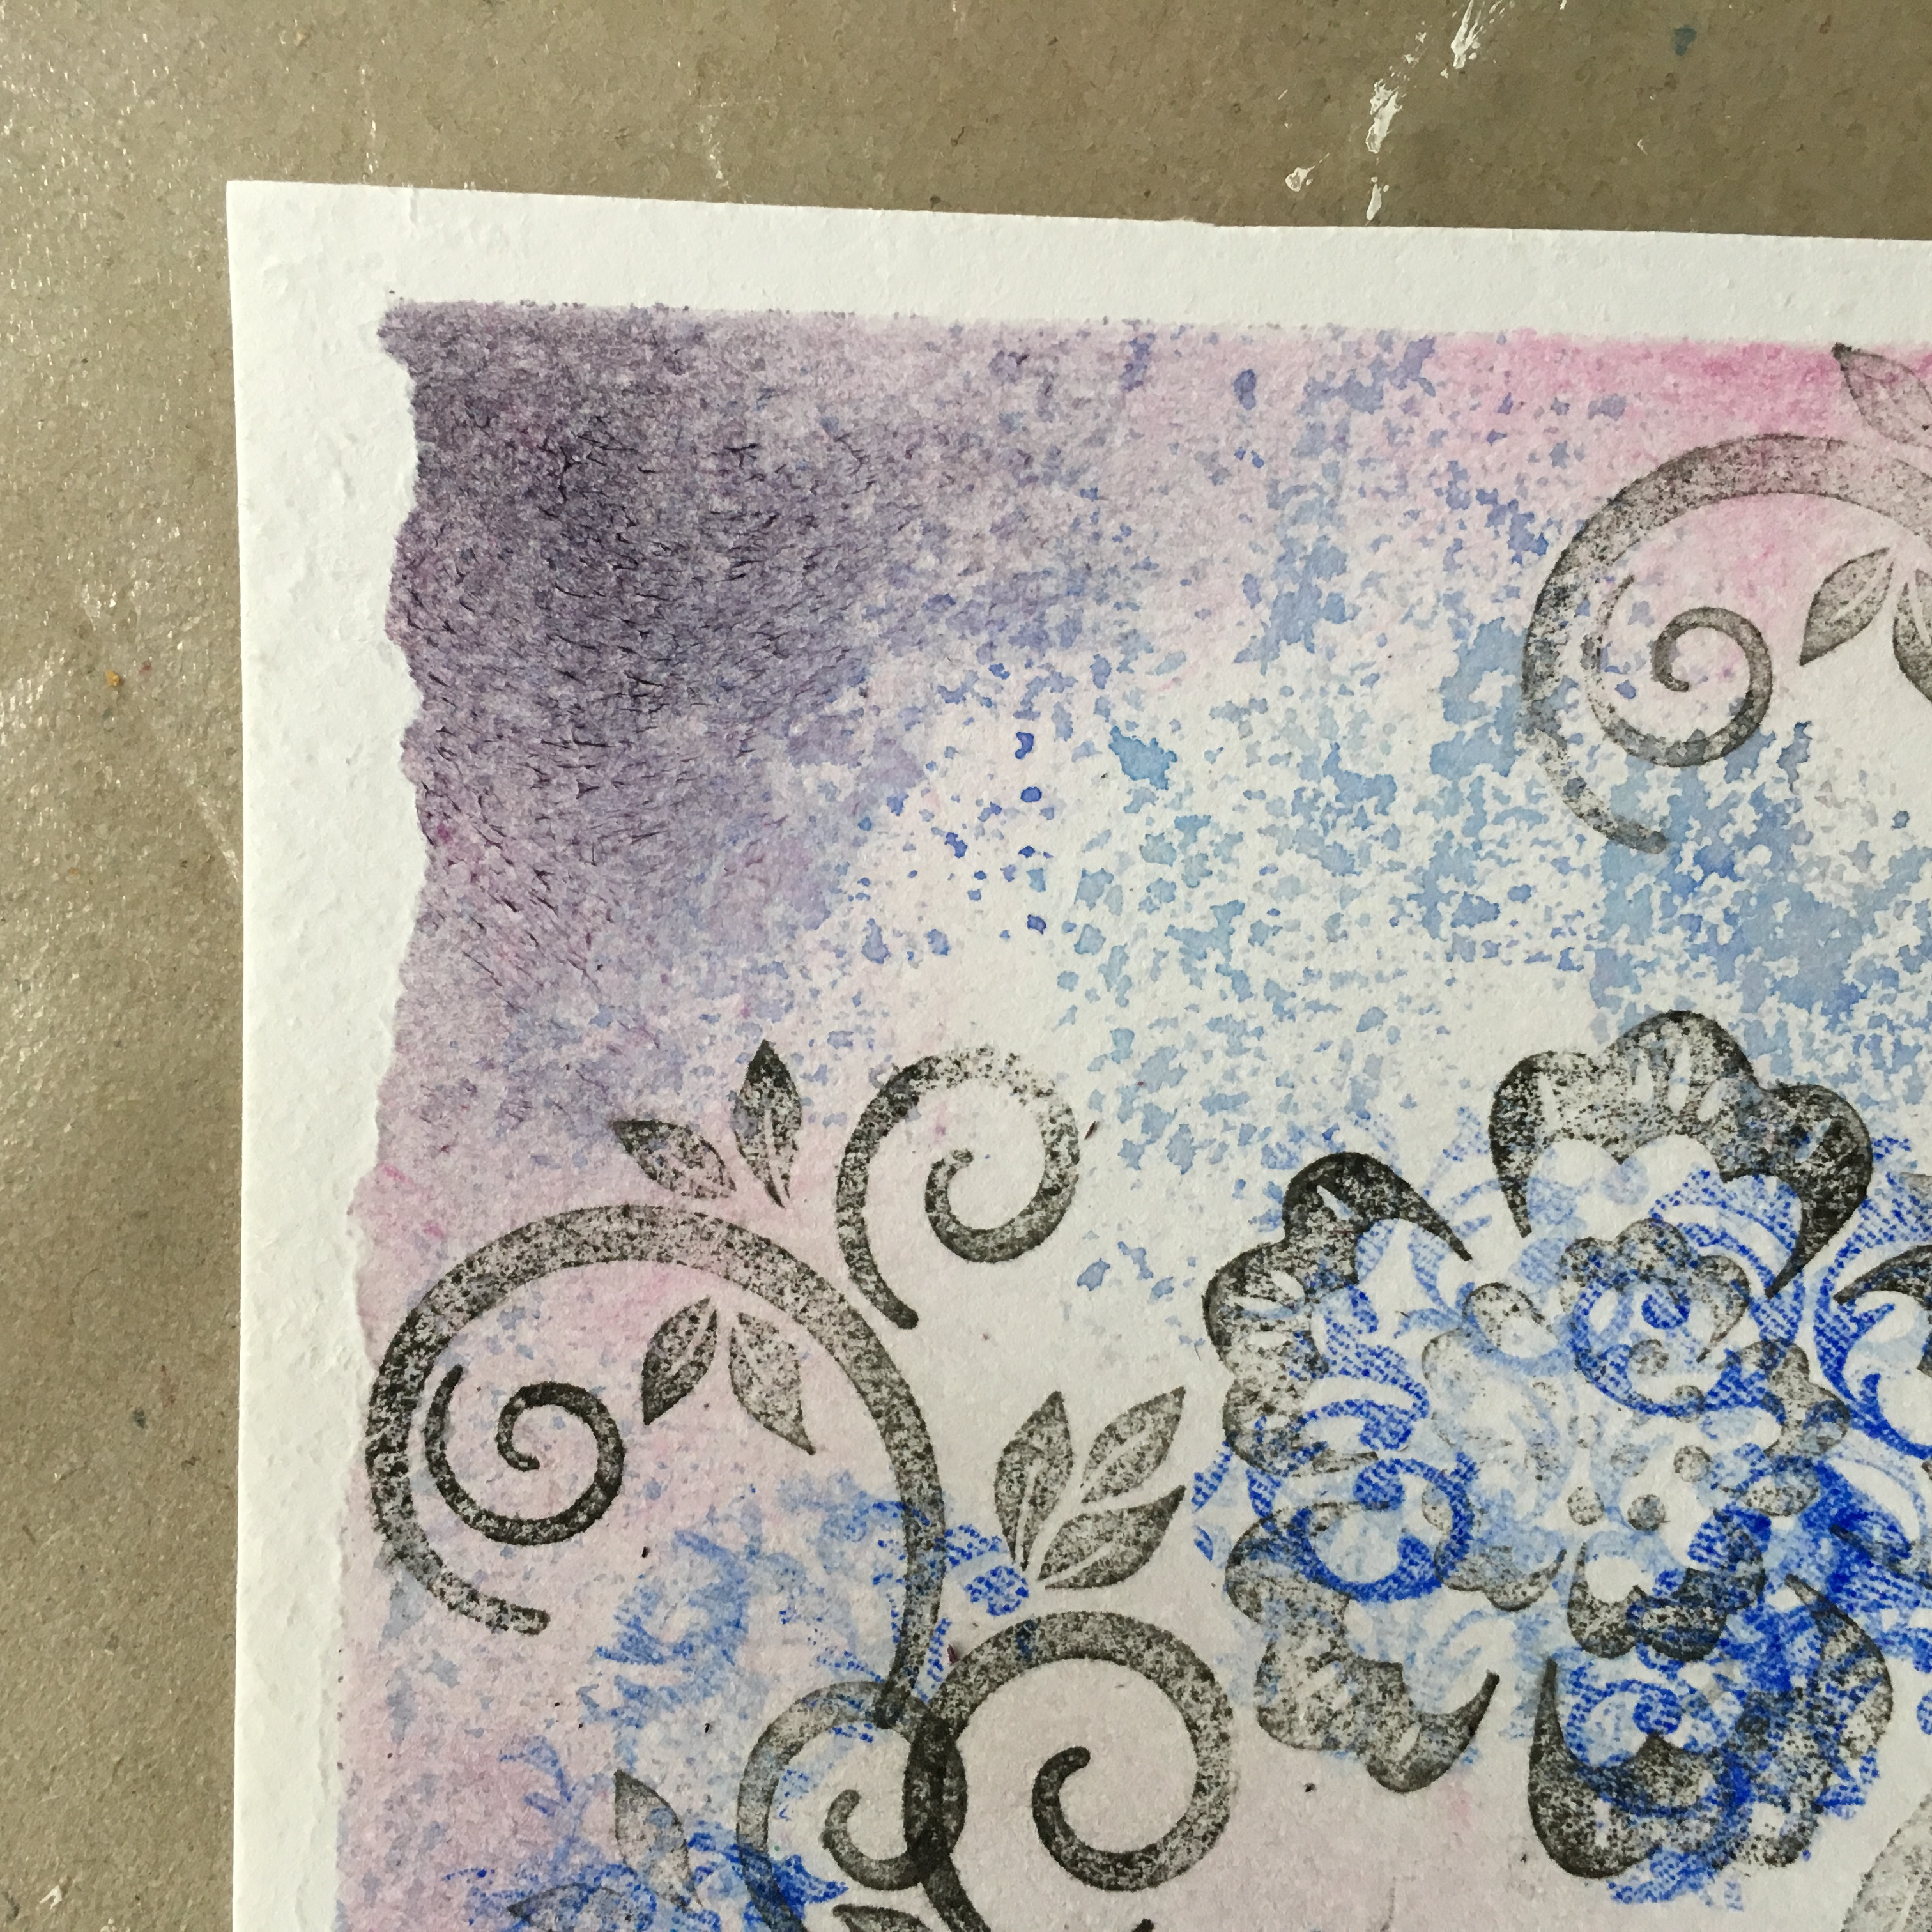 greeting card background floral design in blye, black and purple made with blending and stamping